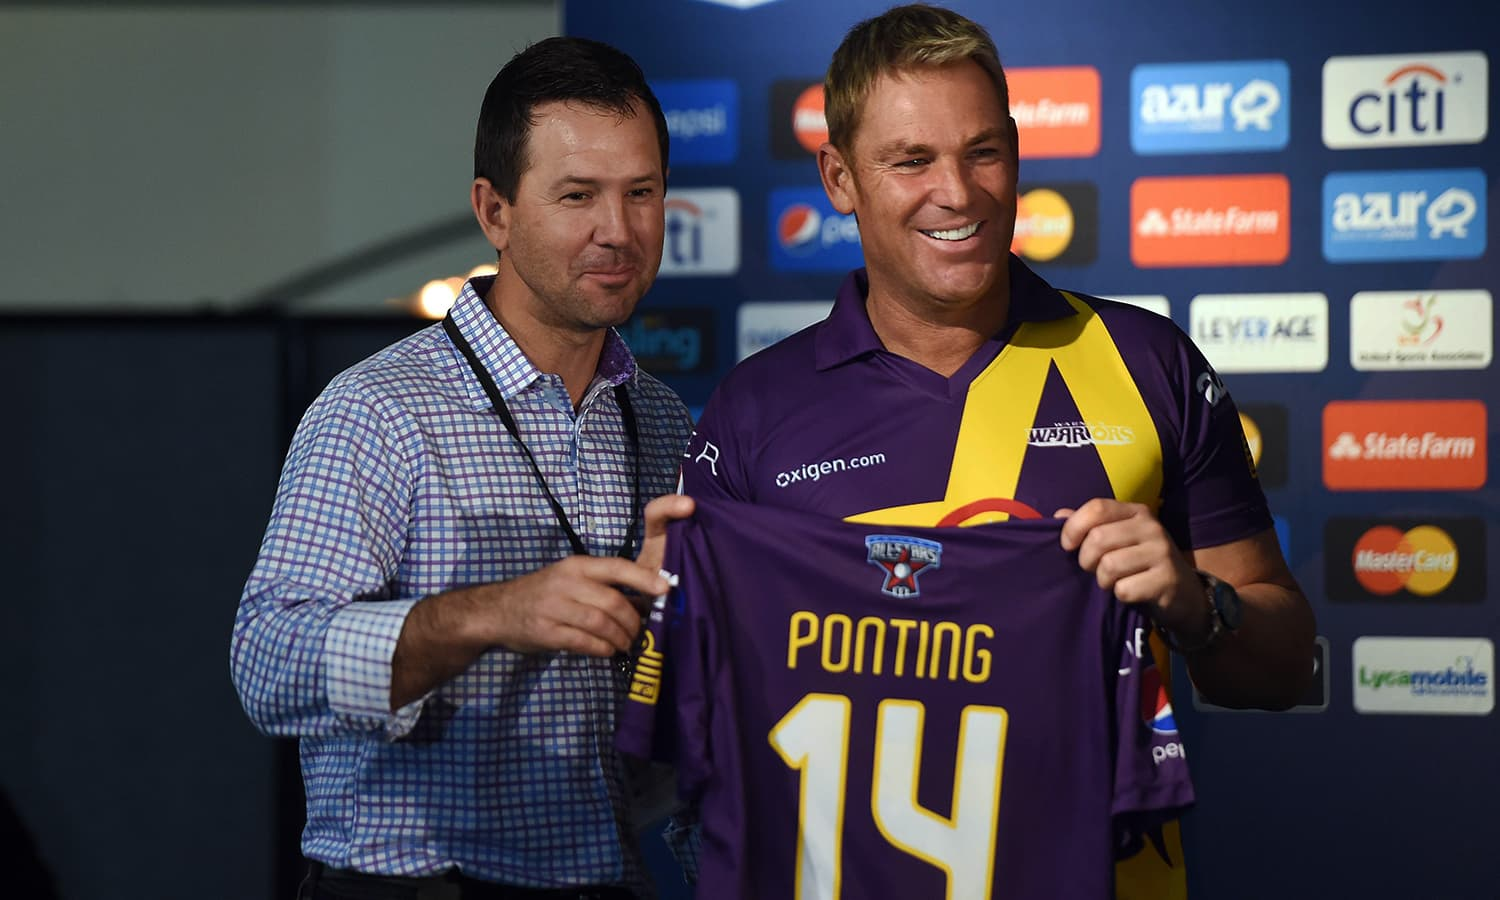 """Australia's Shane Warne (R) and Ricky Ponting pose during a press conference in New York on November 5, 2015. Retired Indian cricketer Sachin Tendulkar and Warne will lead a lineup of renowned cricket players from around the world in the inaugural """"Cricket All-Stars,"""" a three-game series to be played in Major League Baseball stadiums in New York , Houston and Los Angeles, to promote cricket the US. AFP PHOTO/JEWEL SAMAD"""